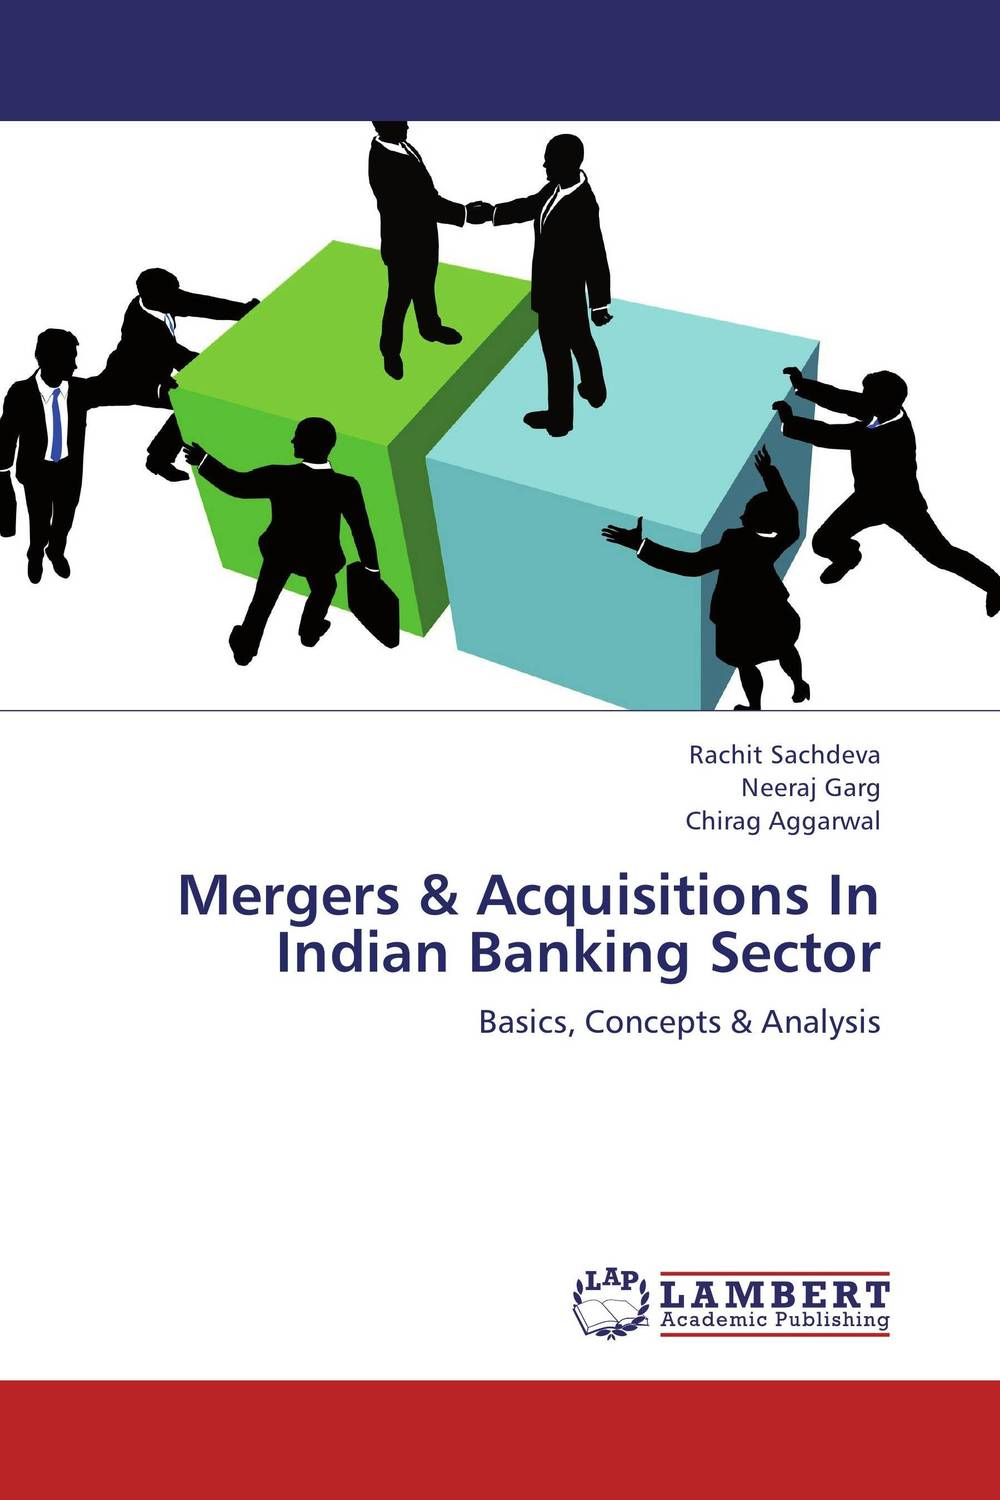 Mergers & Acquisitions In Indian Banking Sector цена и фото